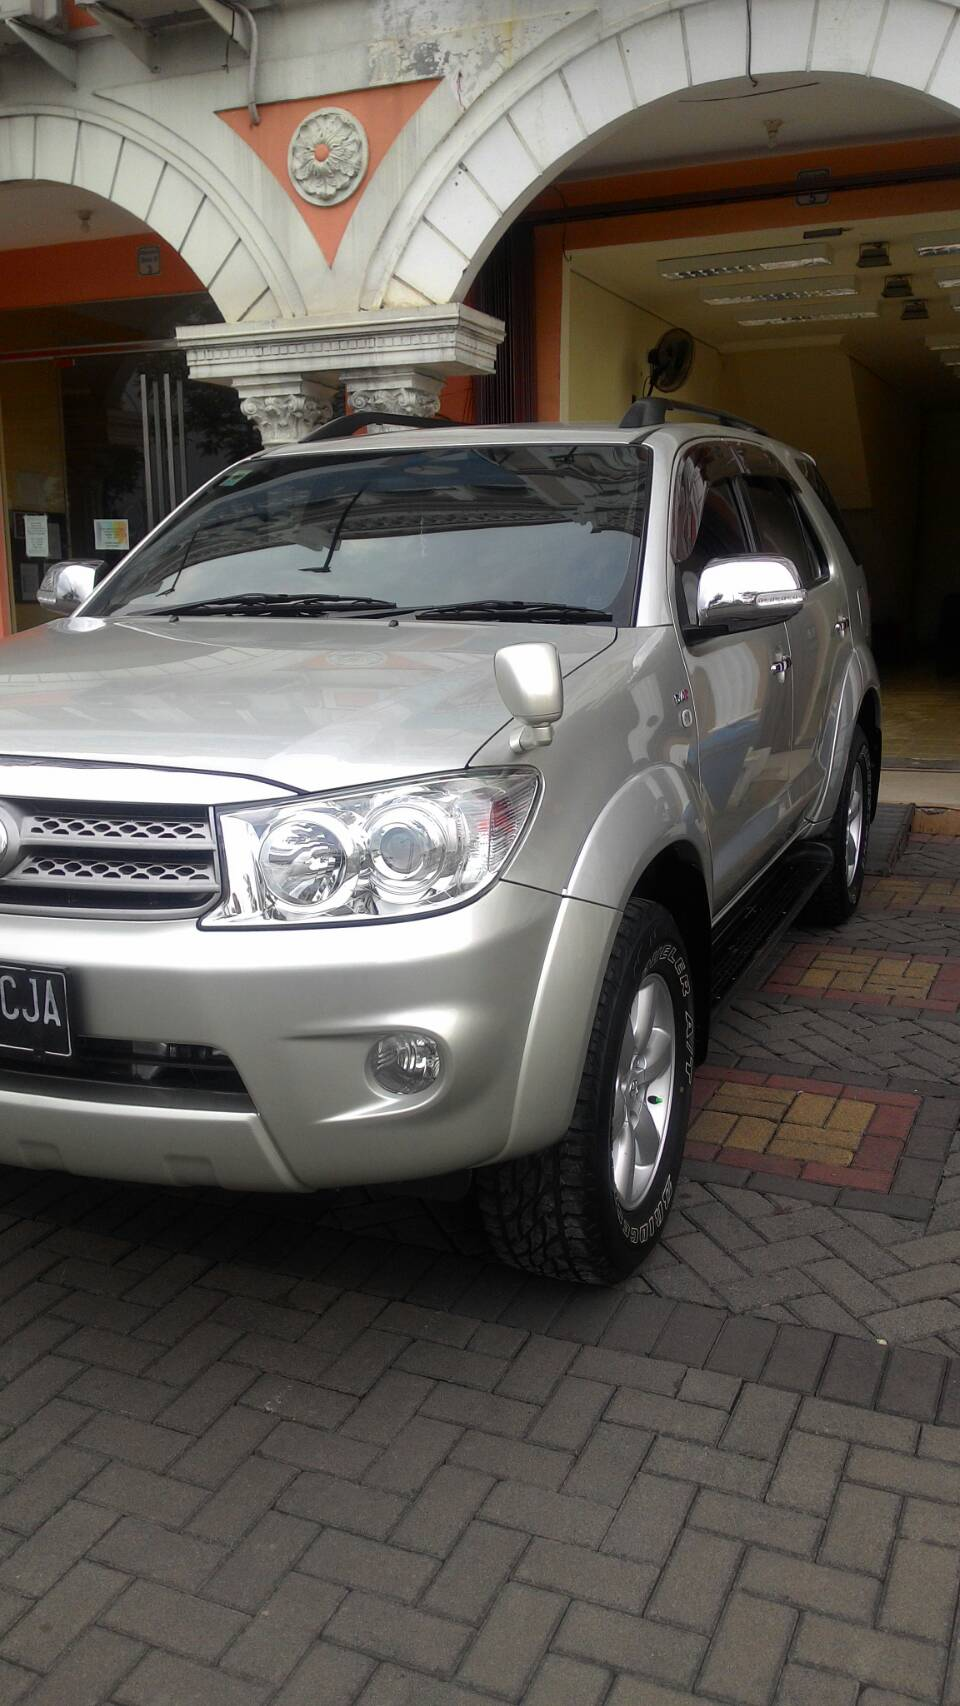 Toyota Fortuner Nano Ceramic Coating